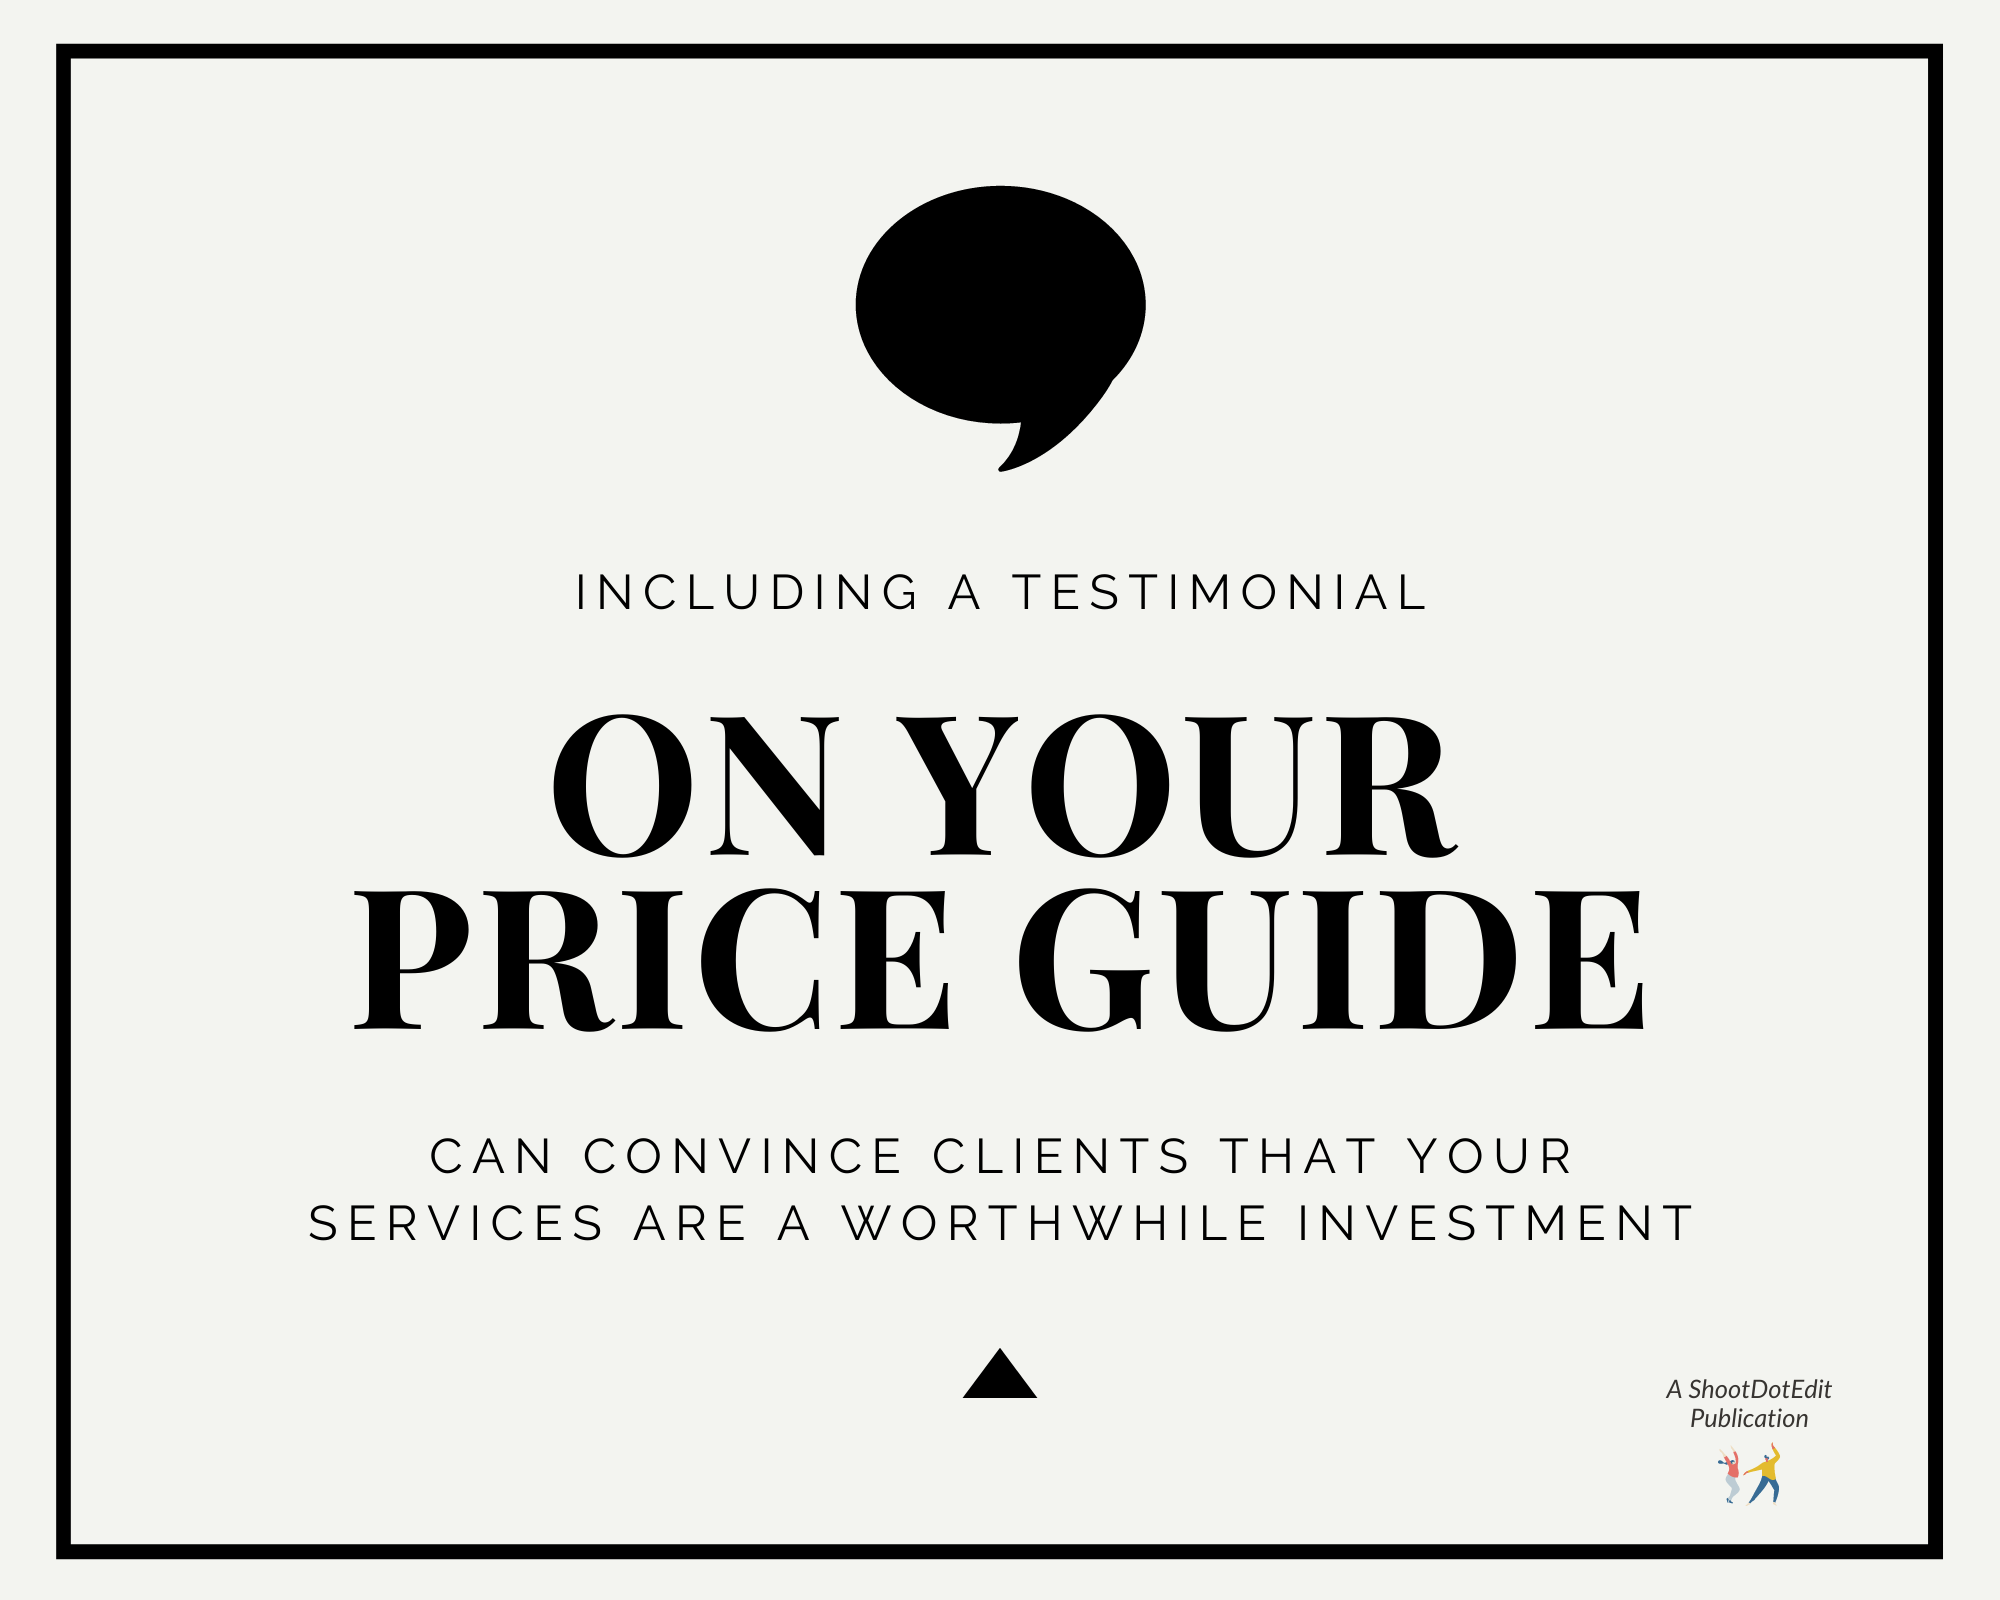 Infographic including a testimonial on your price guide can convince clients that your services are a worthwhile investment